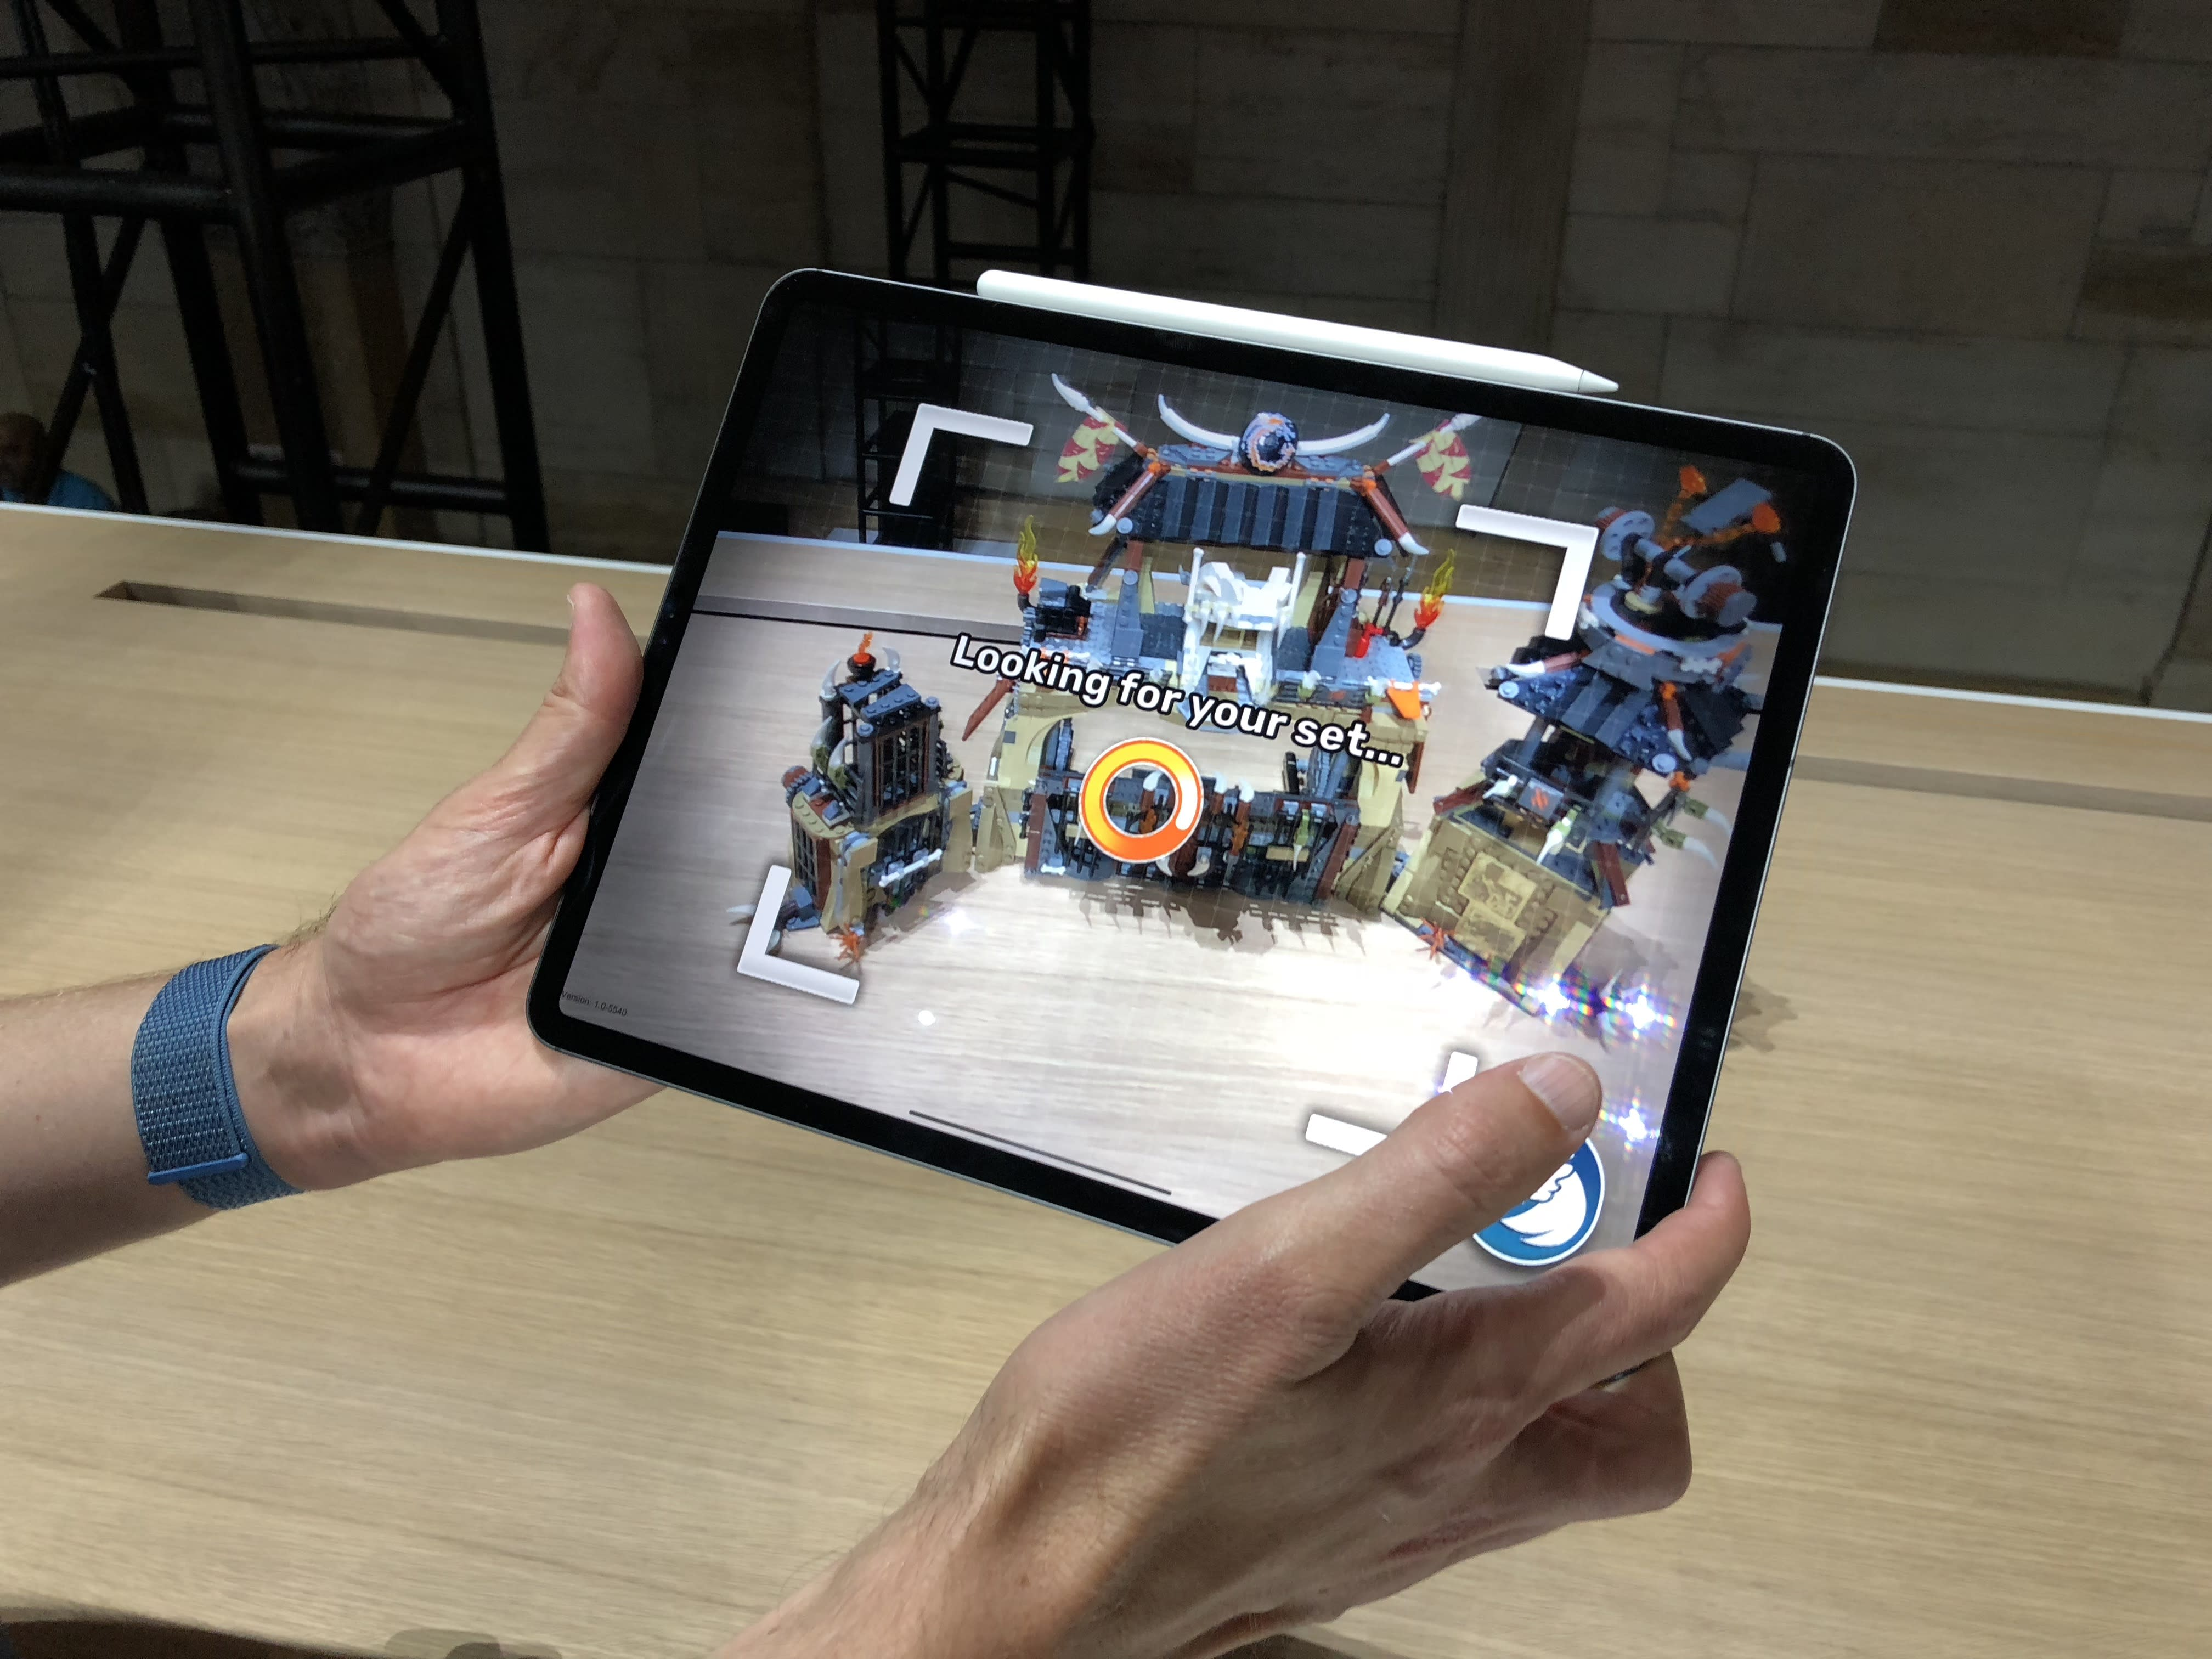 The new iPad Pro is almost as fast as one of Apple's $2,800 laptops — but it only costs $800 (AAPL, INTC)